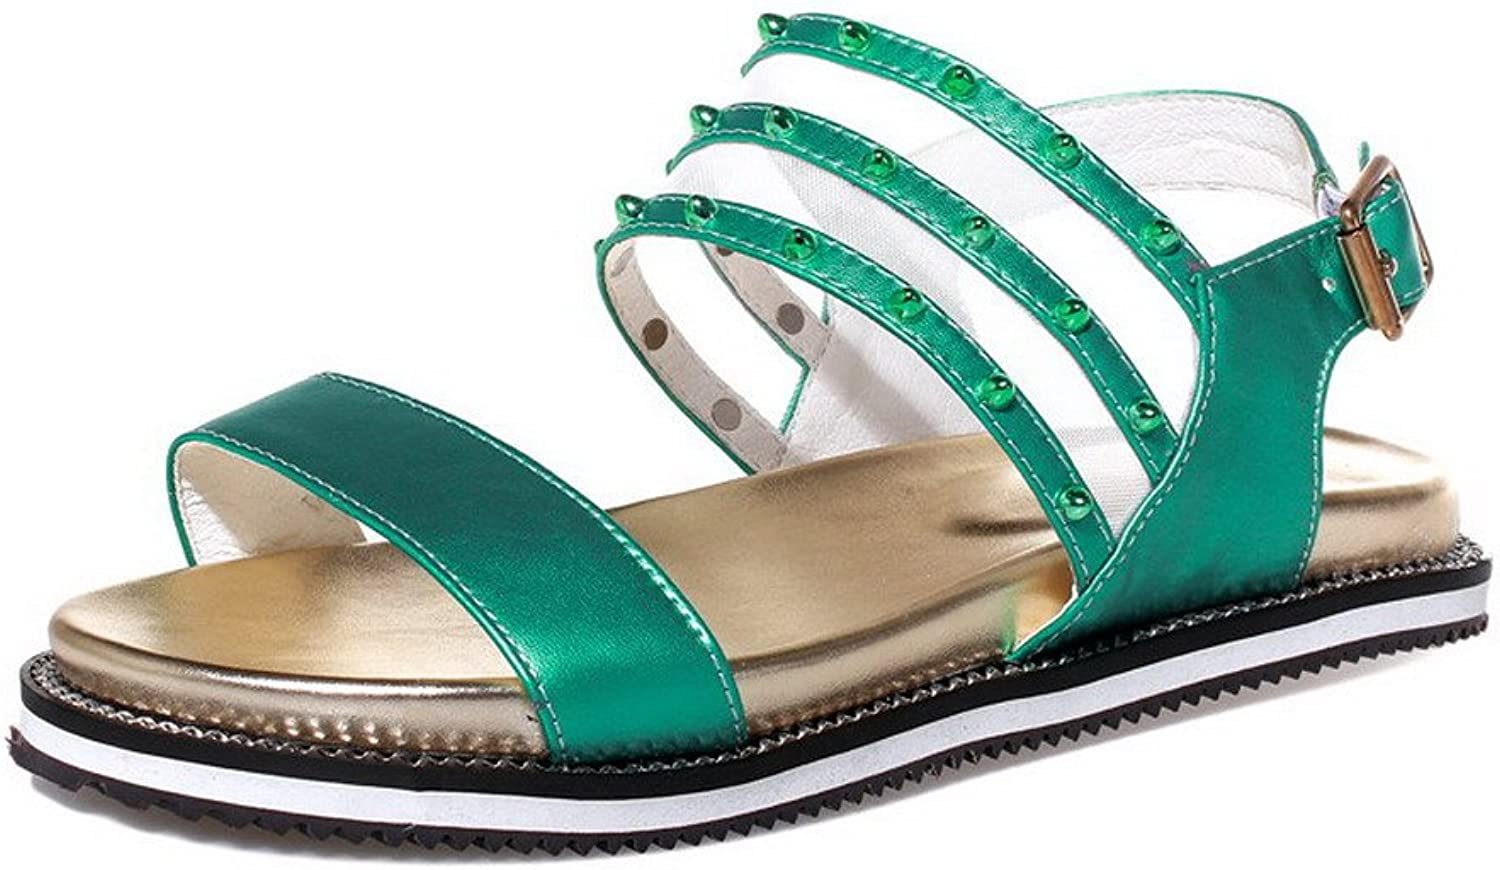 AmoonyFashion Women's Low-Heels Soft Material Buckle Open Toe Sandals with Metal Ornament